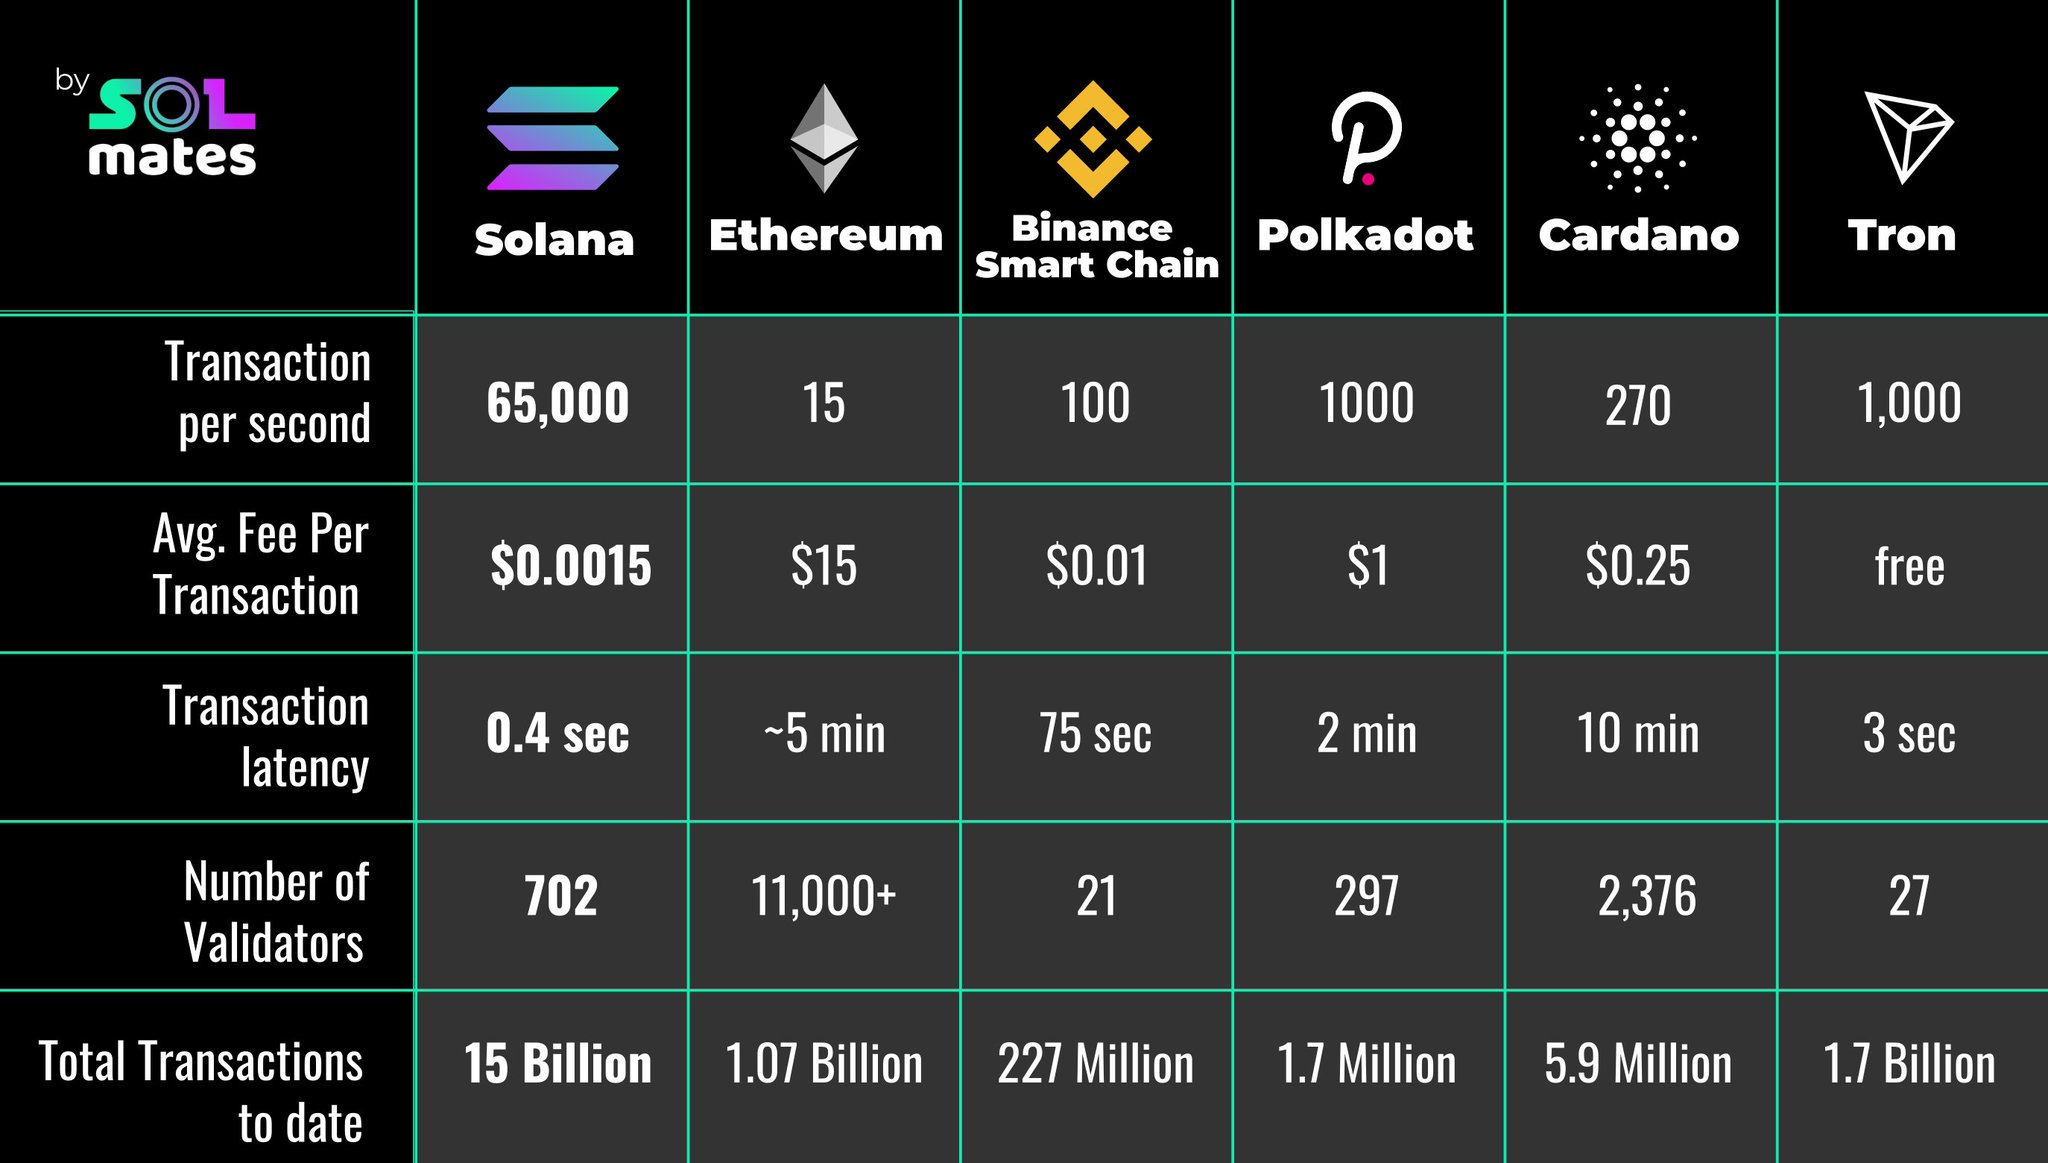 """S◎L mates ☀️ on Twitter: """"Solana vs Ethereum, Binance Smartchain, Polkadot, Cardano and Tron Solana is fast + scalable + composable + decentralized ☀️@ solana $SOL $ETH $BNB $DOT $ADA $TRX… https://t.co/1sFsOgjffw"""""""